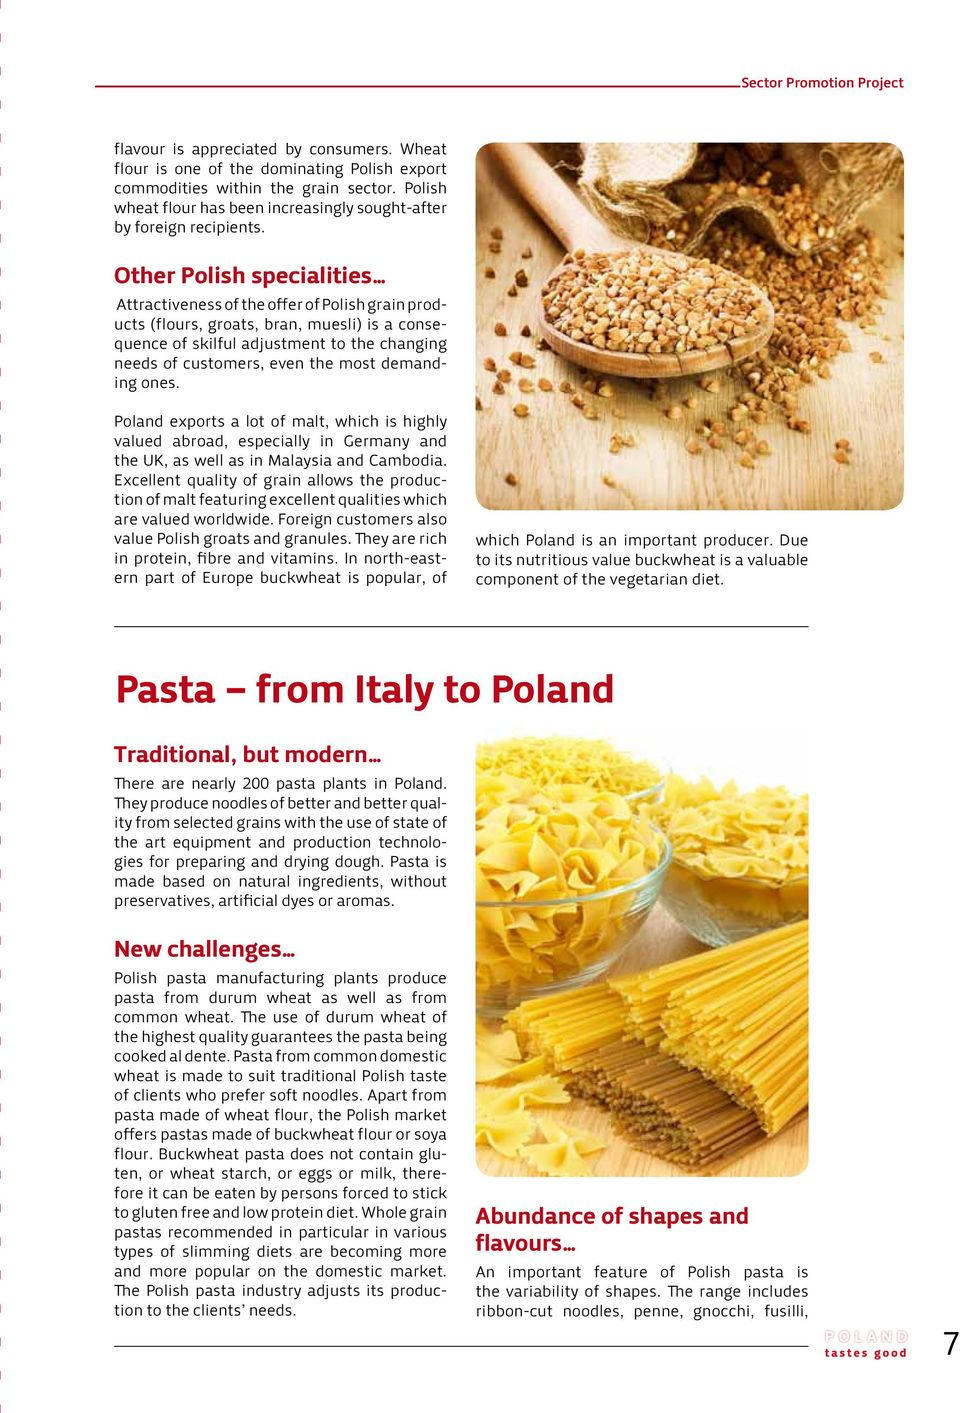 Other Polish specialities Attractiveness of the offer of Polish grain products (flours, groats, bran, muesli) is a consequence of skilful adjustment to the changing needs of customers, even the most